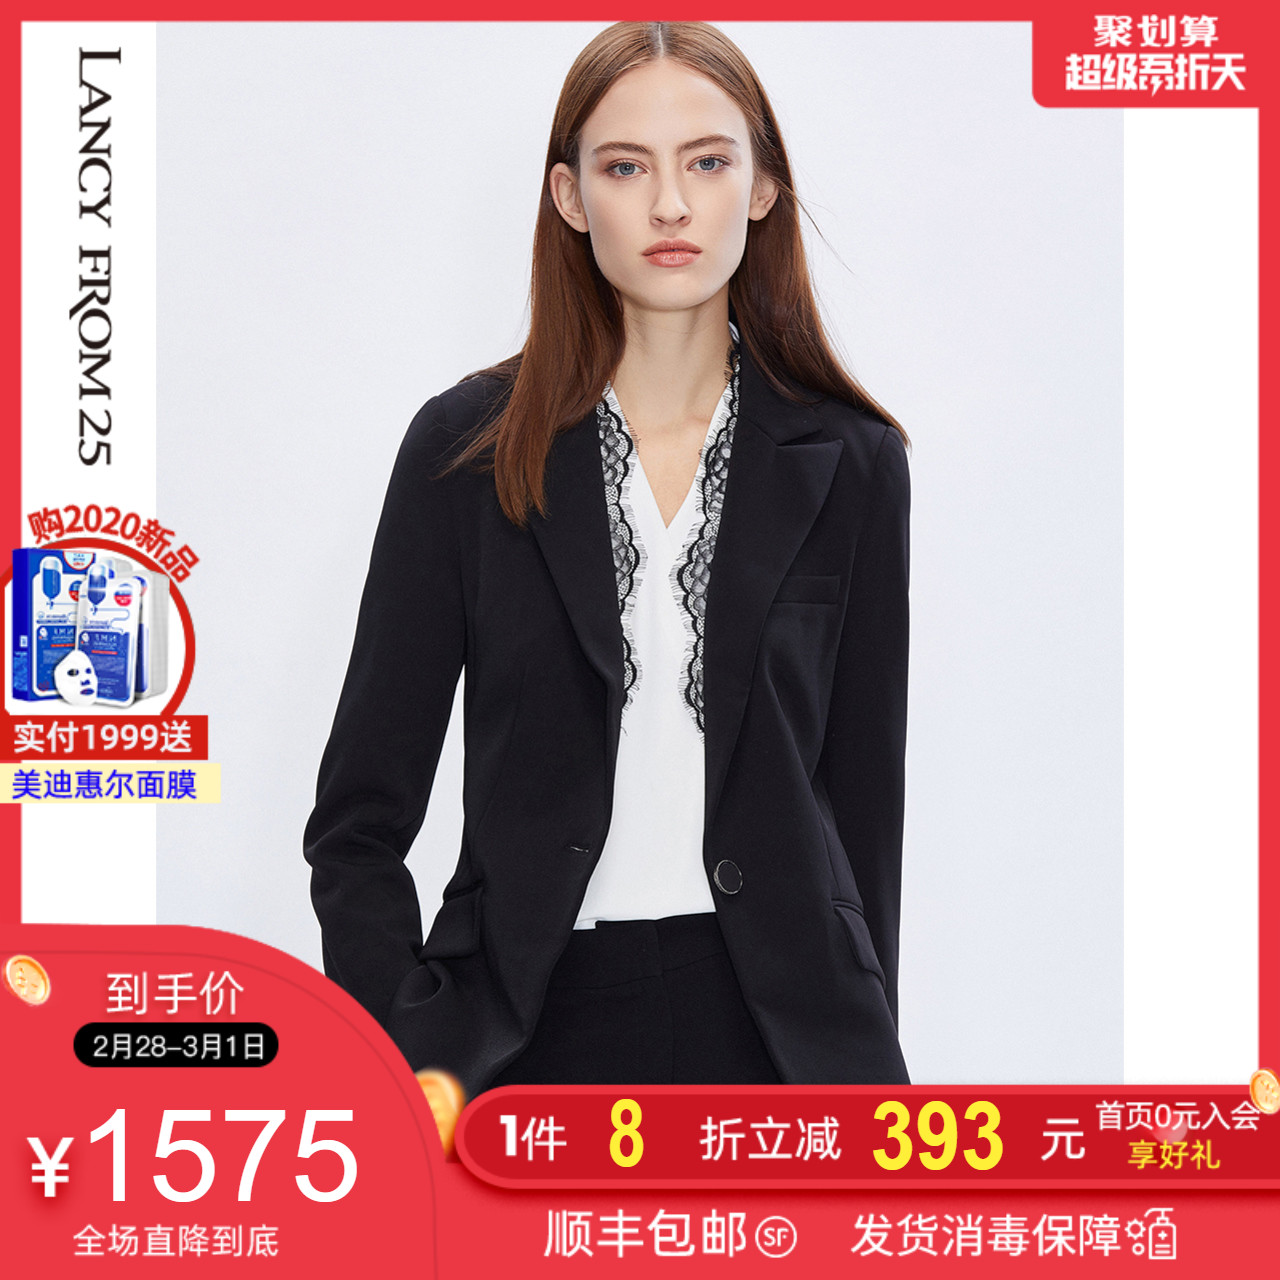 Lanzi suit 2020 spring new French small group design lace neckline acetic acid black blazer coat female